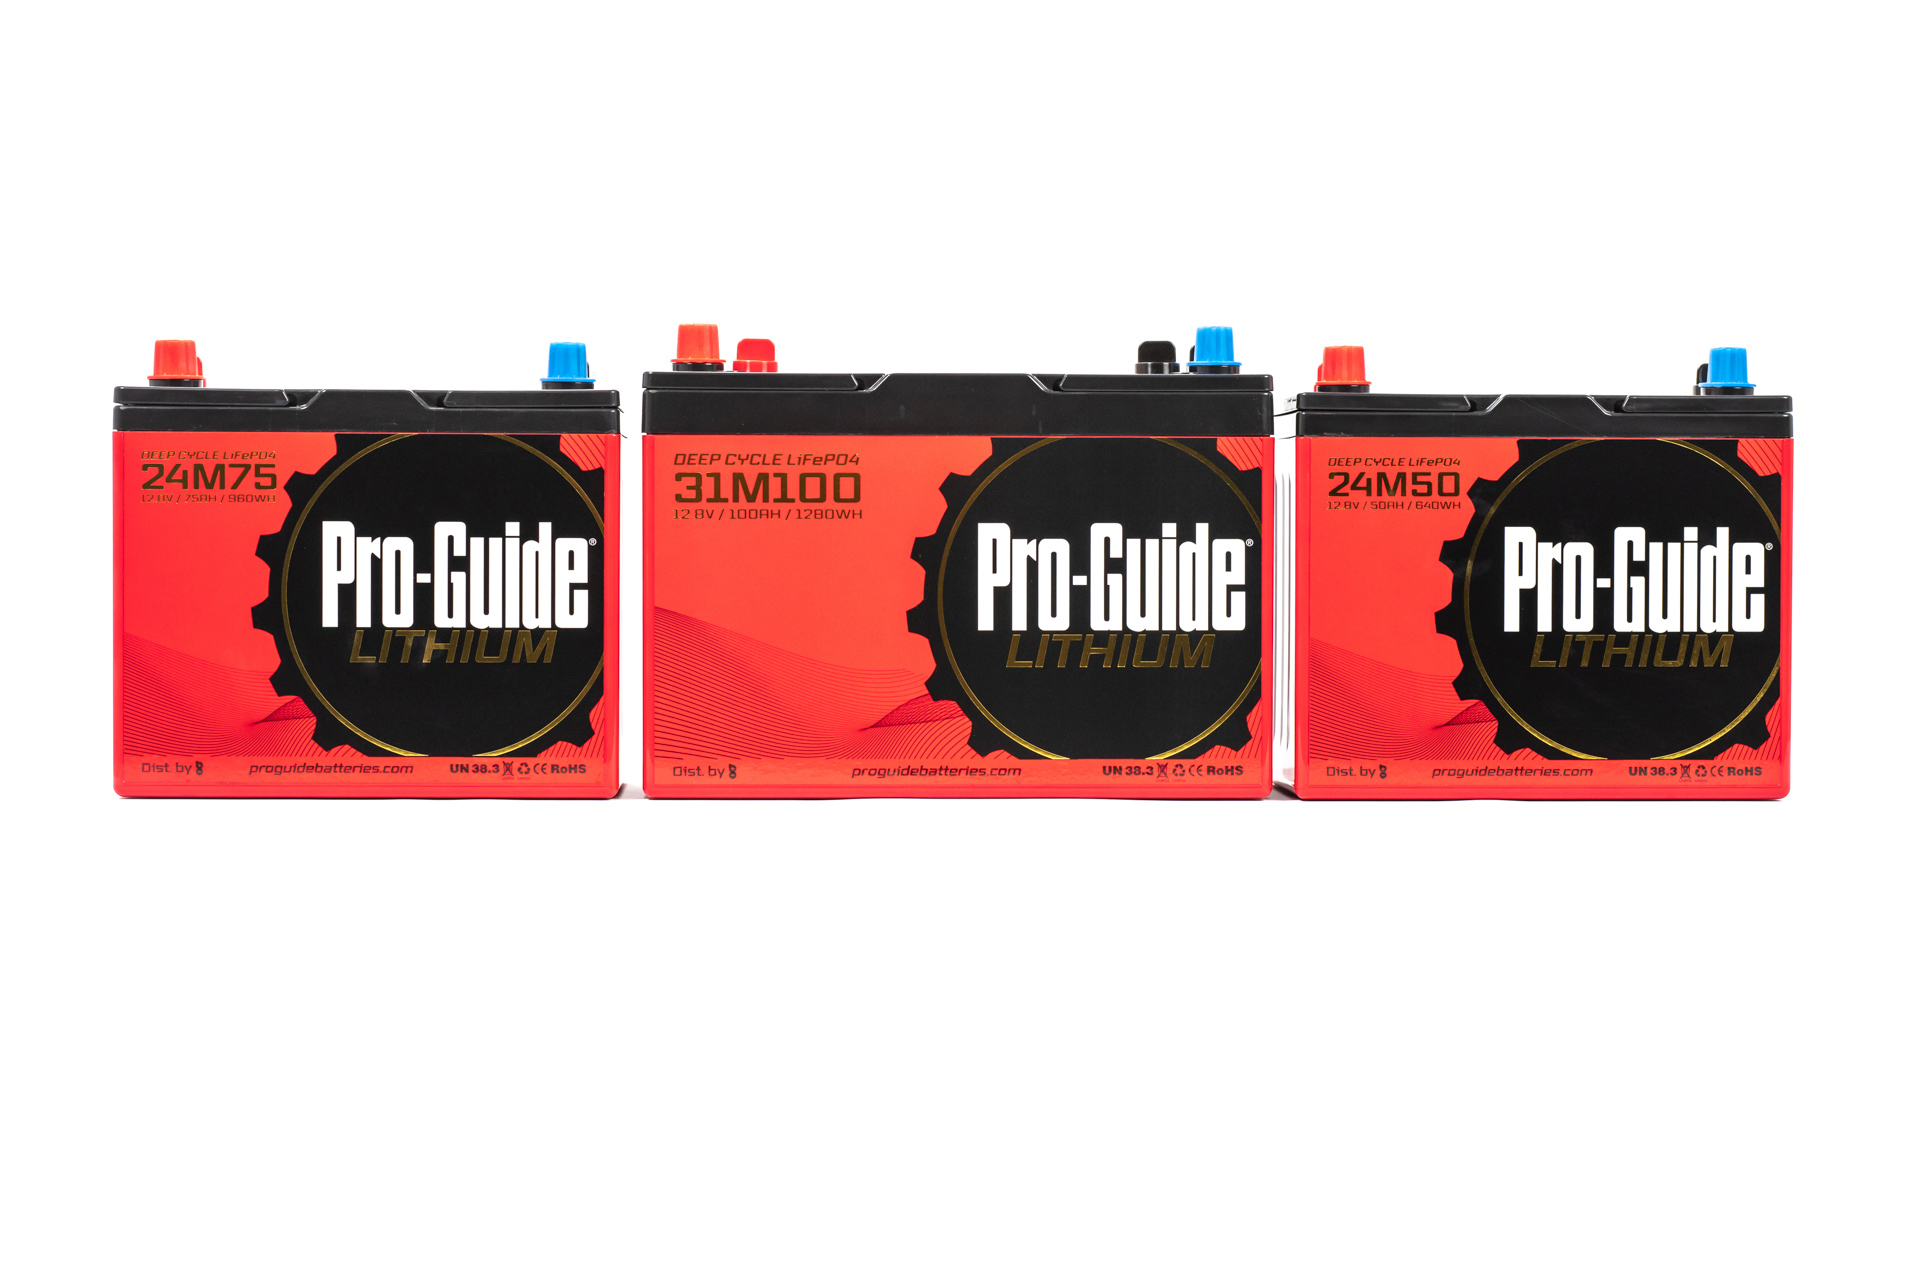 Pro-Guide Lithium Batteries Battery Outfitters Commercial Product Photography